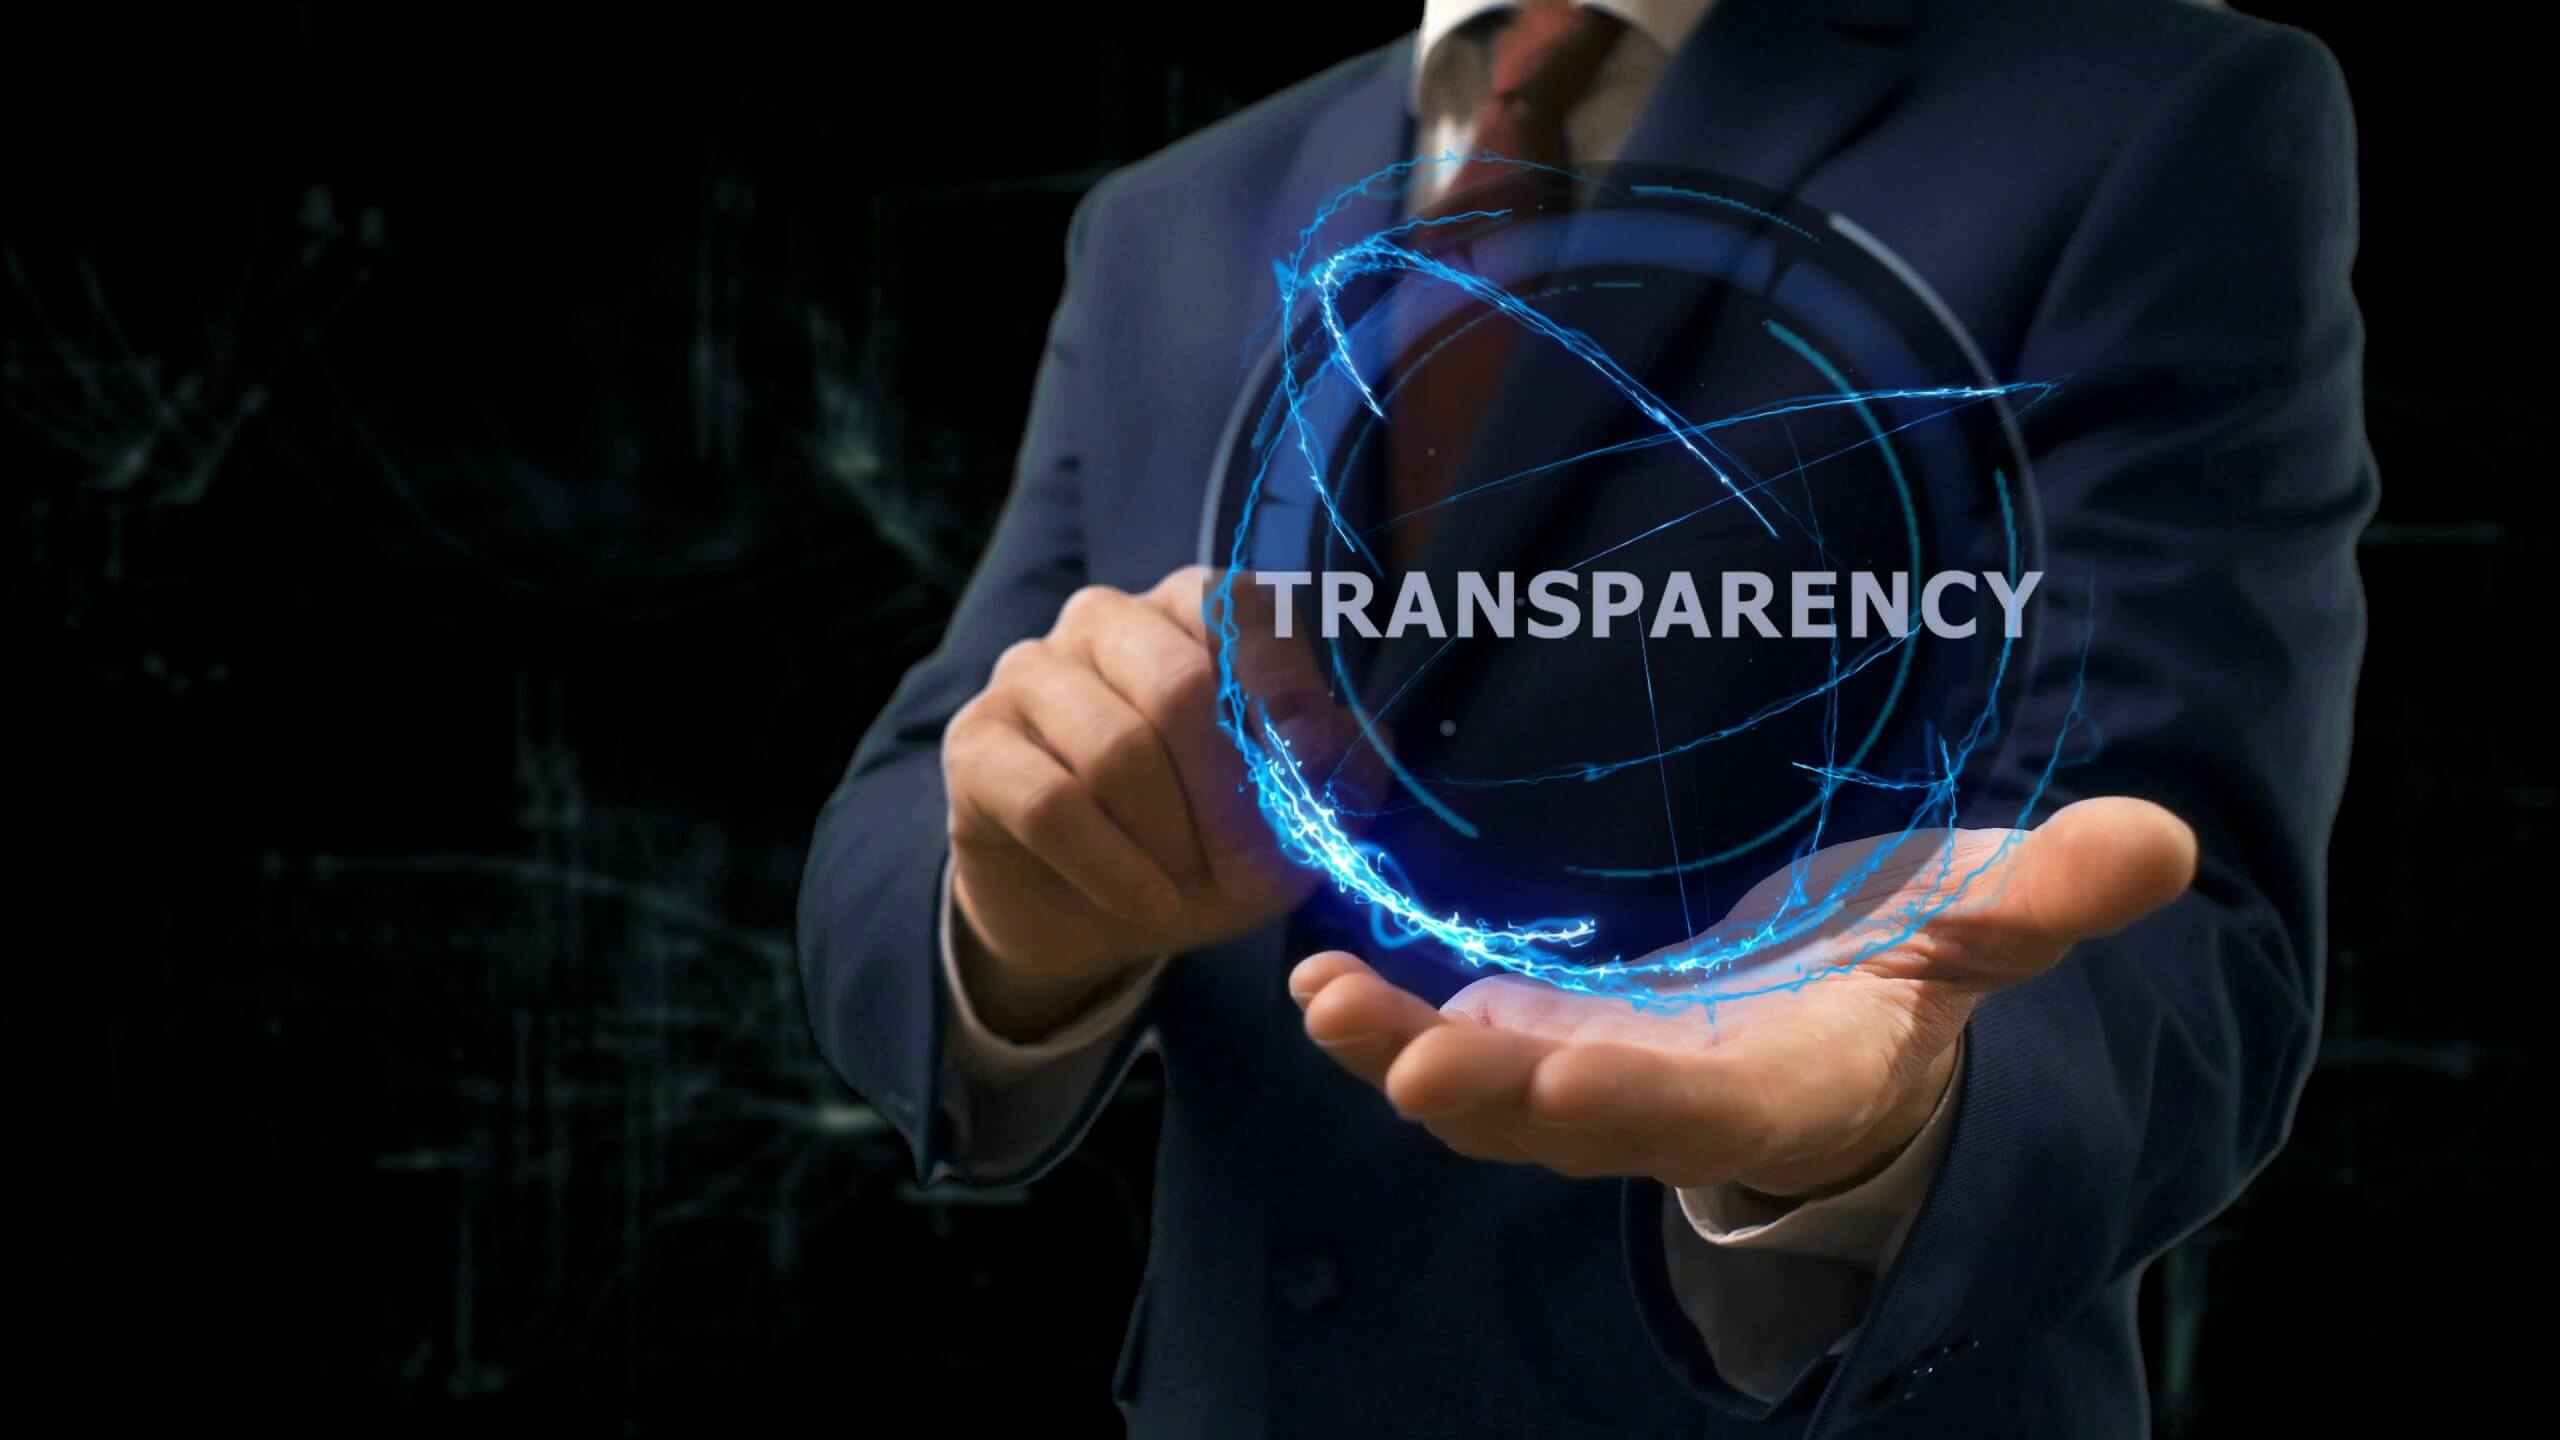 Transparency in Business - Complete Controller